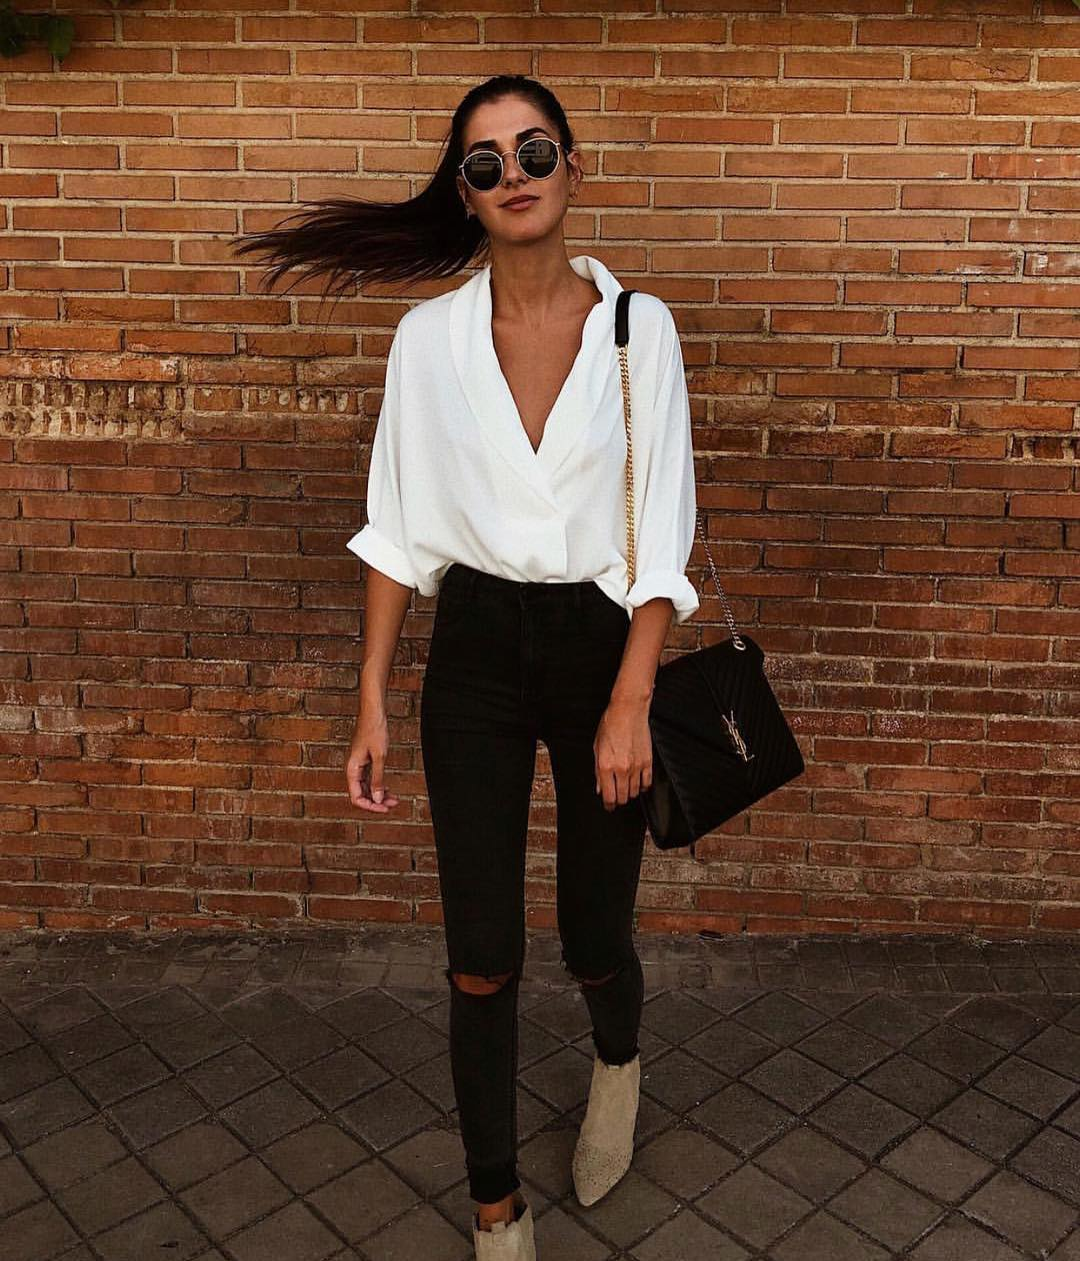 White Shirt With Black Skinny Jeans And Beige Suede Ankle Boots For Summer 2019